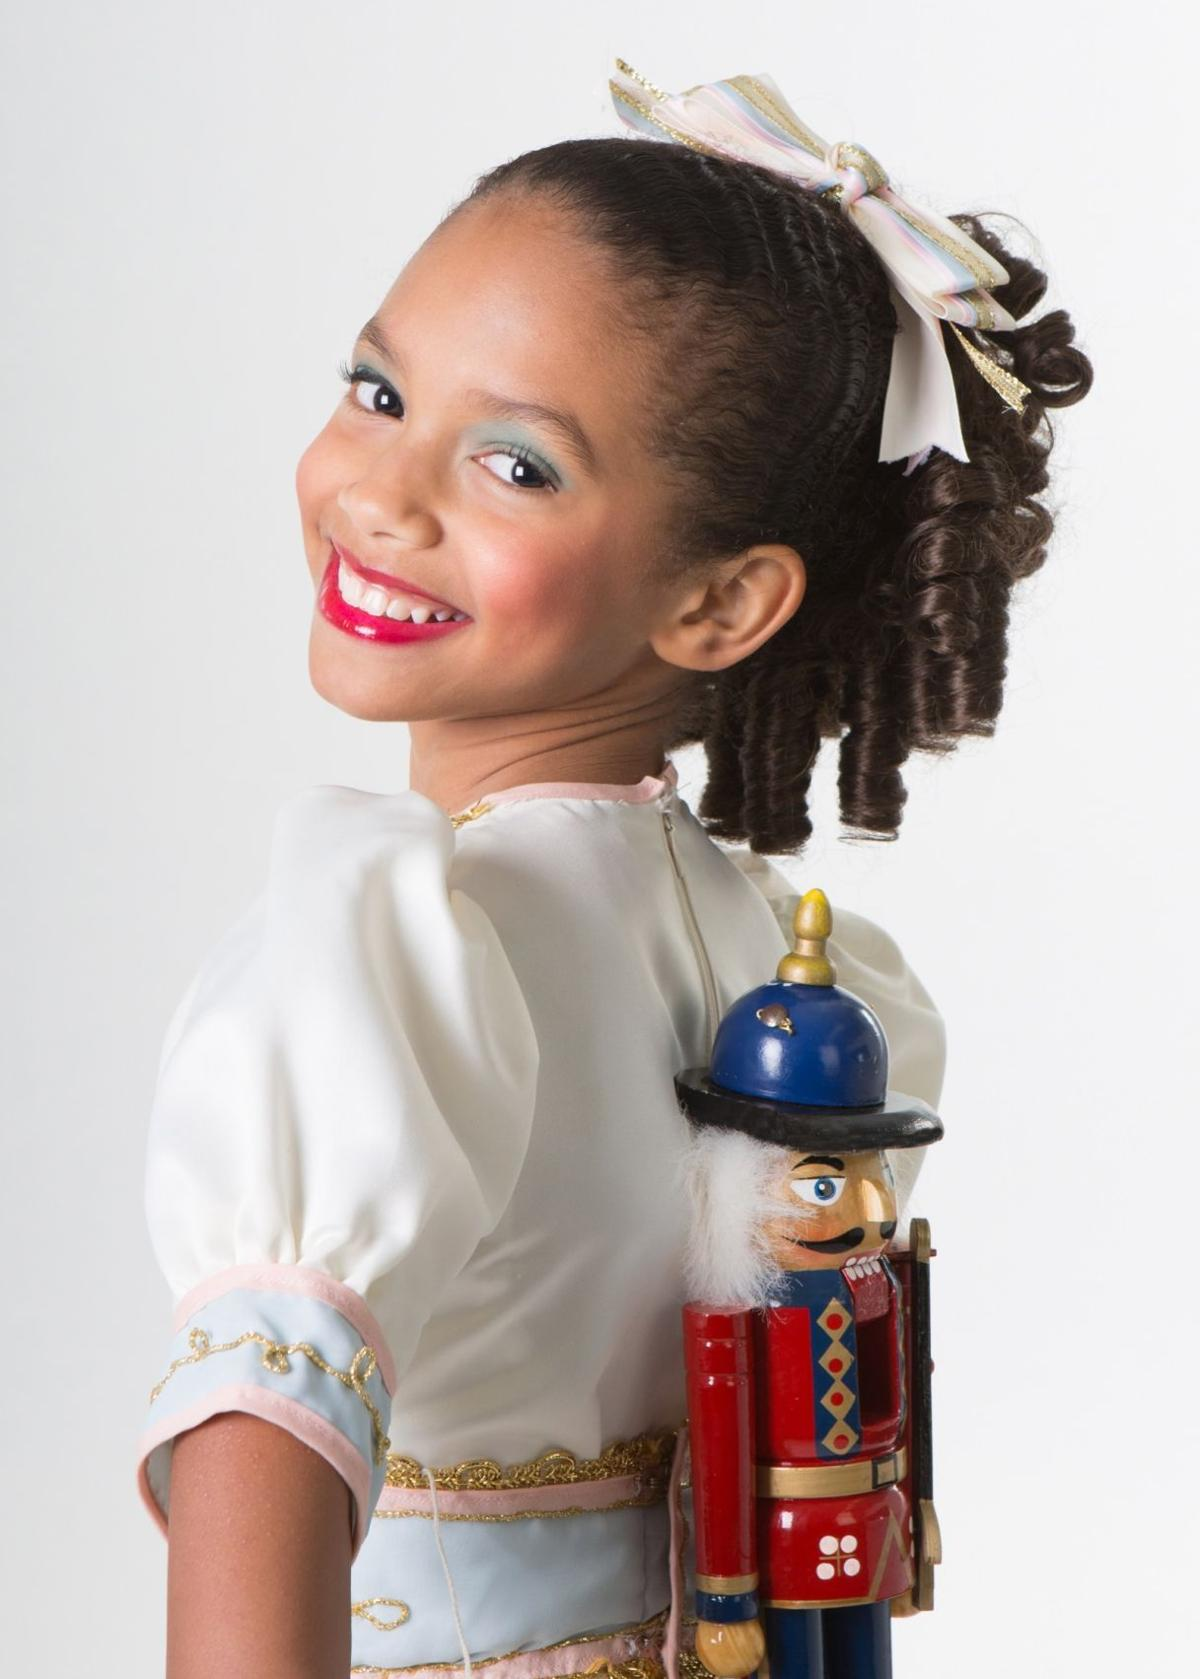 'The Nutcracker' at Centenary Stage Co.